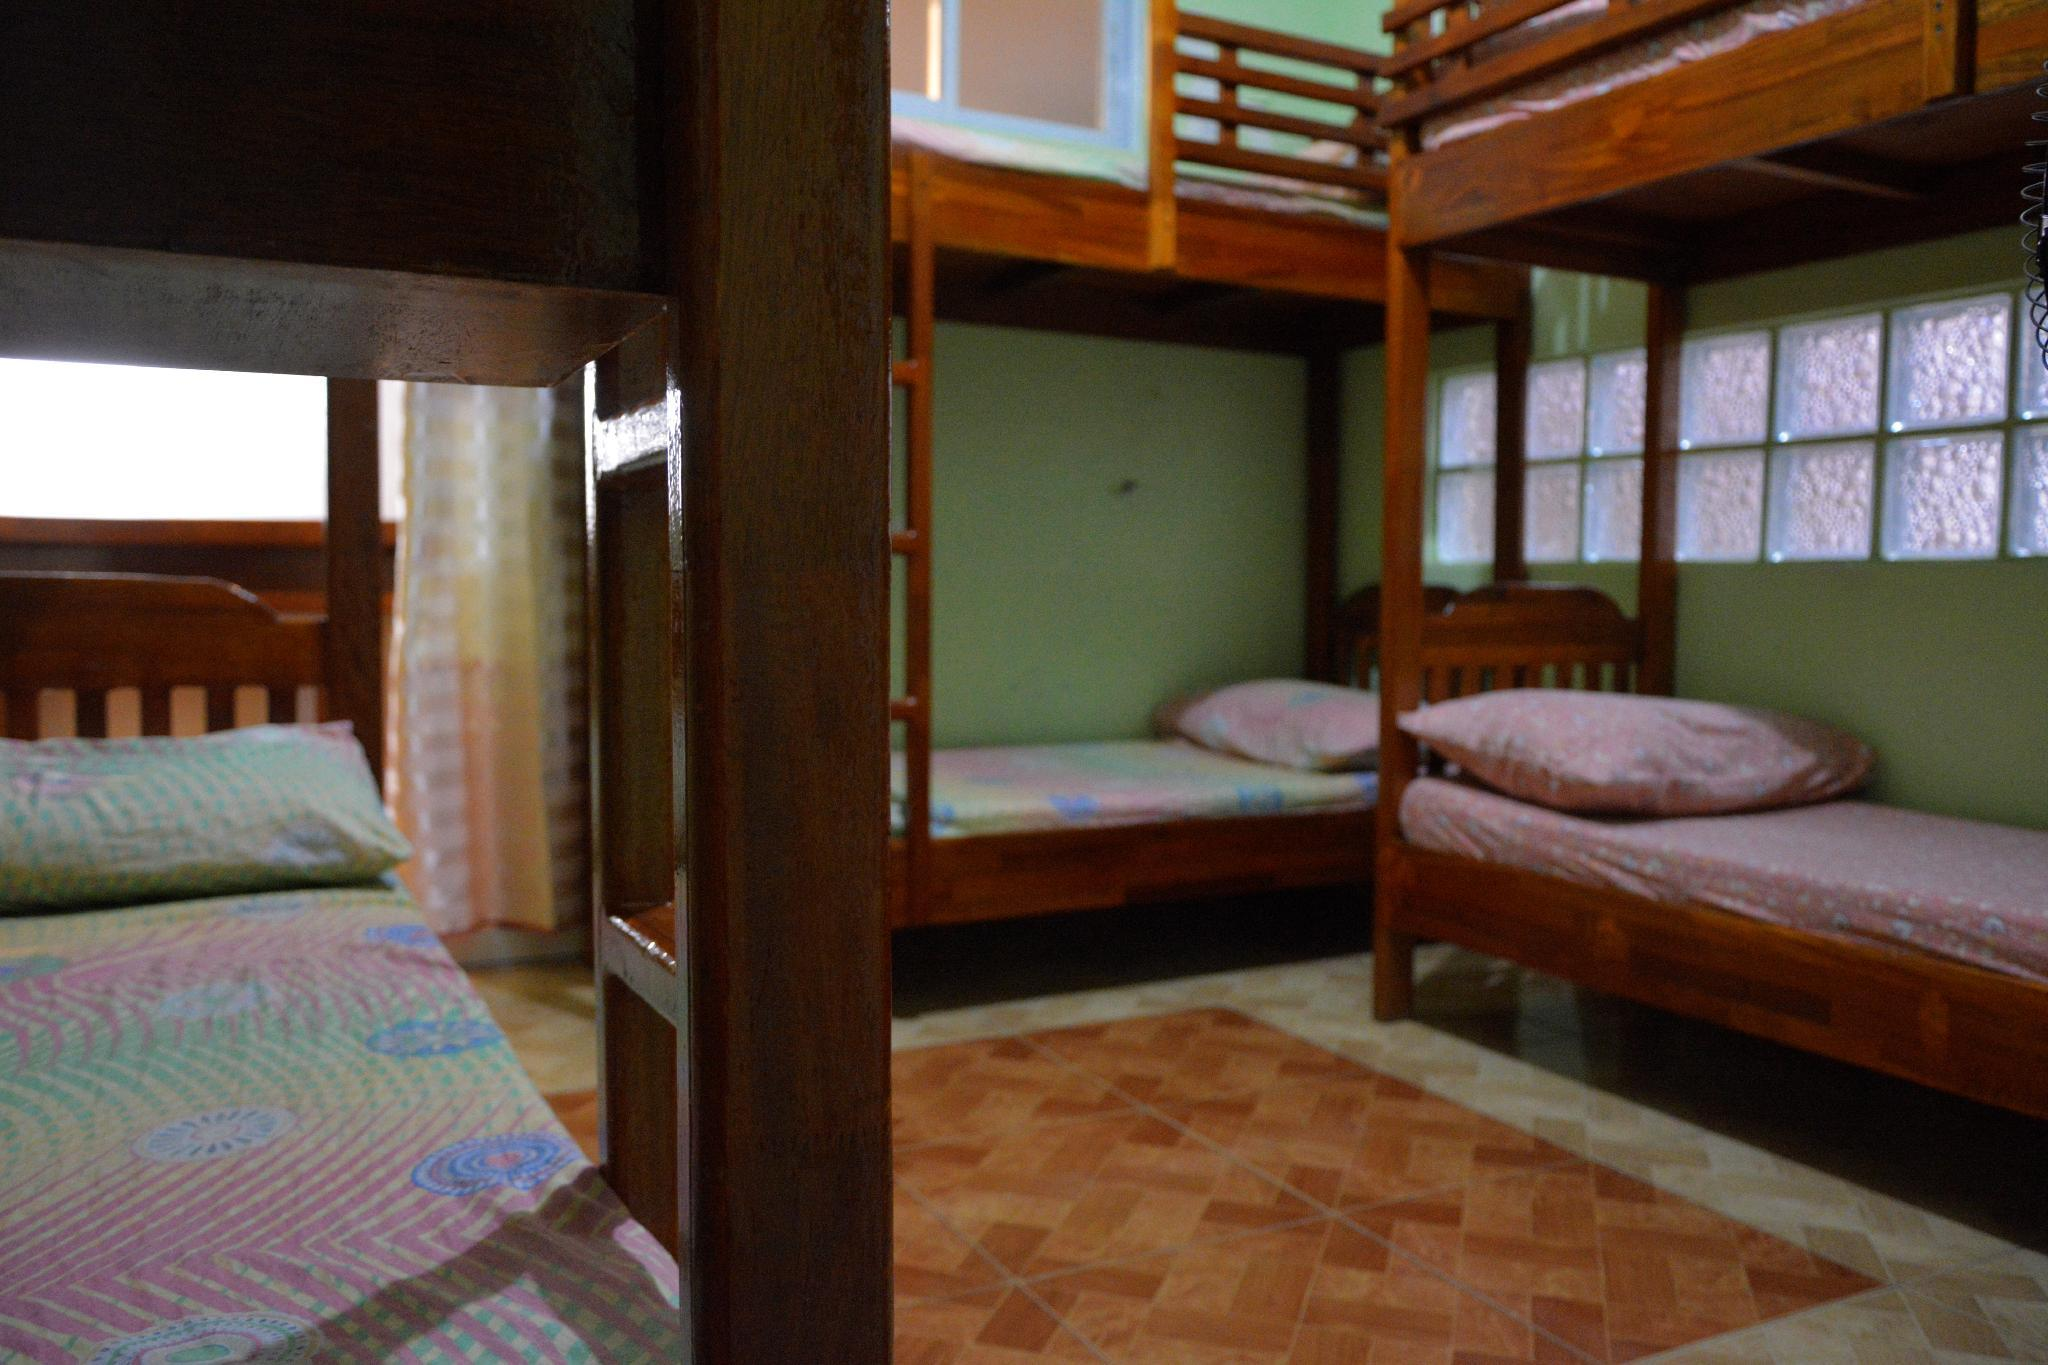 Affordable Room For 4 6 Pax Near Mkt And Session Rd